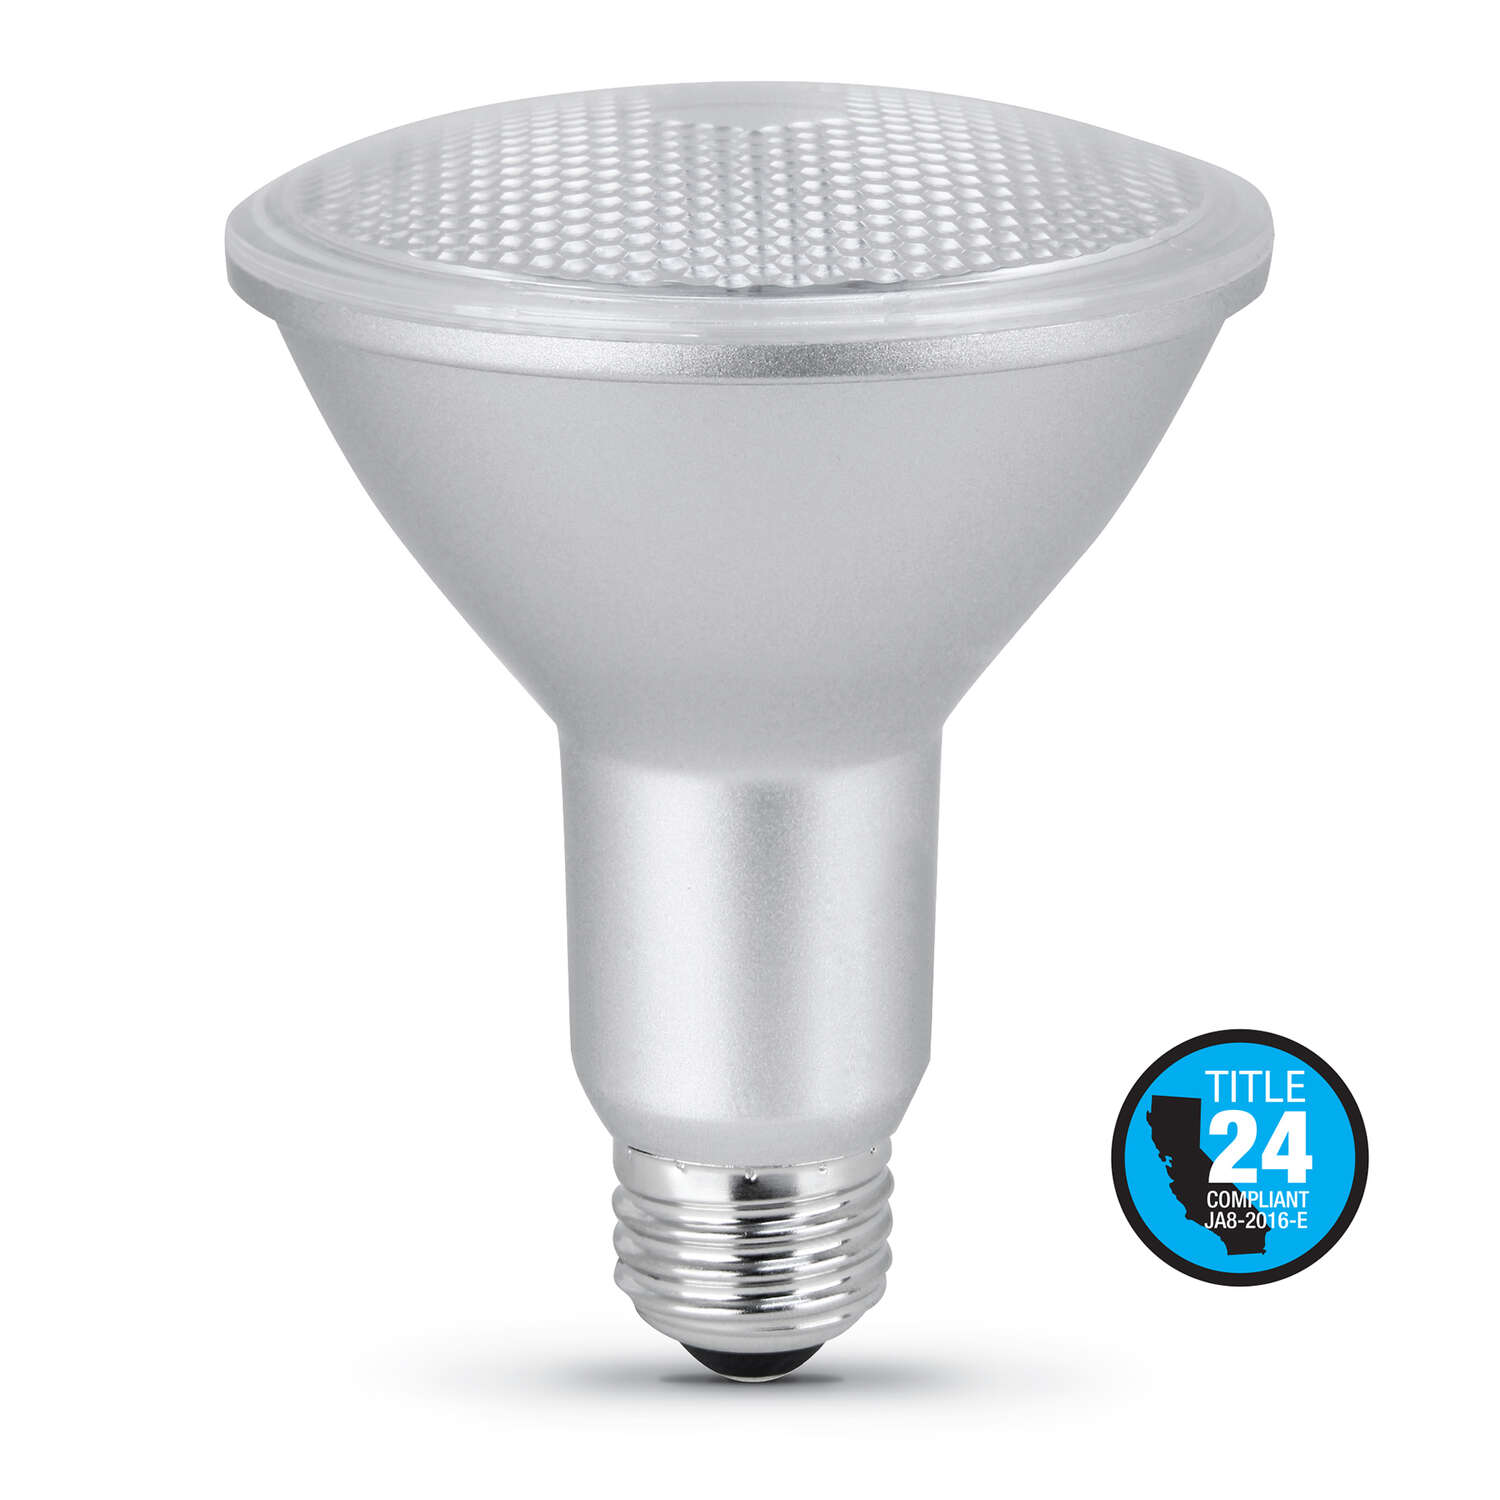 FEIT Electric  12 watts PAR30  LED Bulb  750 lumens Bright White  Reflector  75 Watt Equivalence